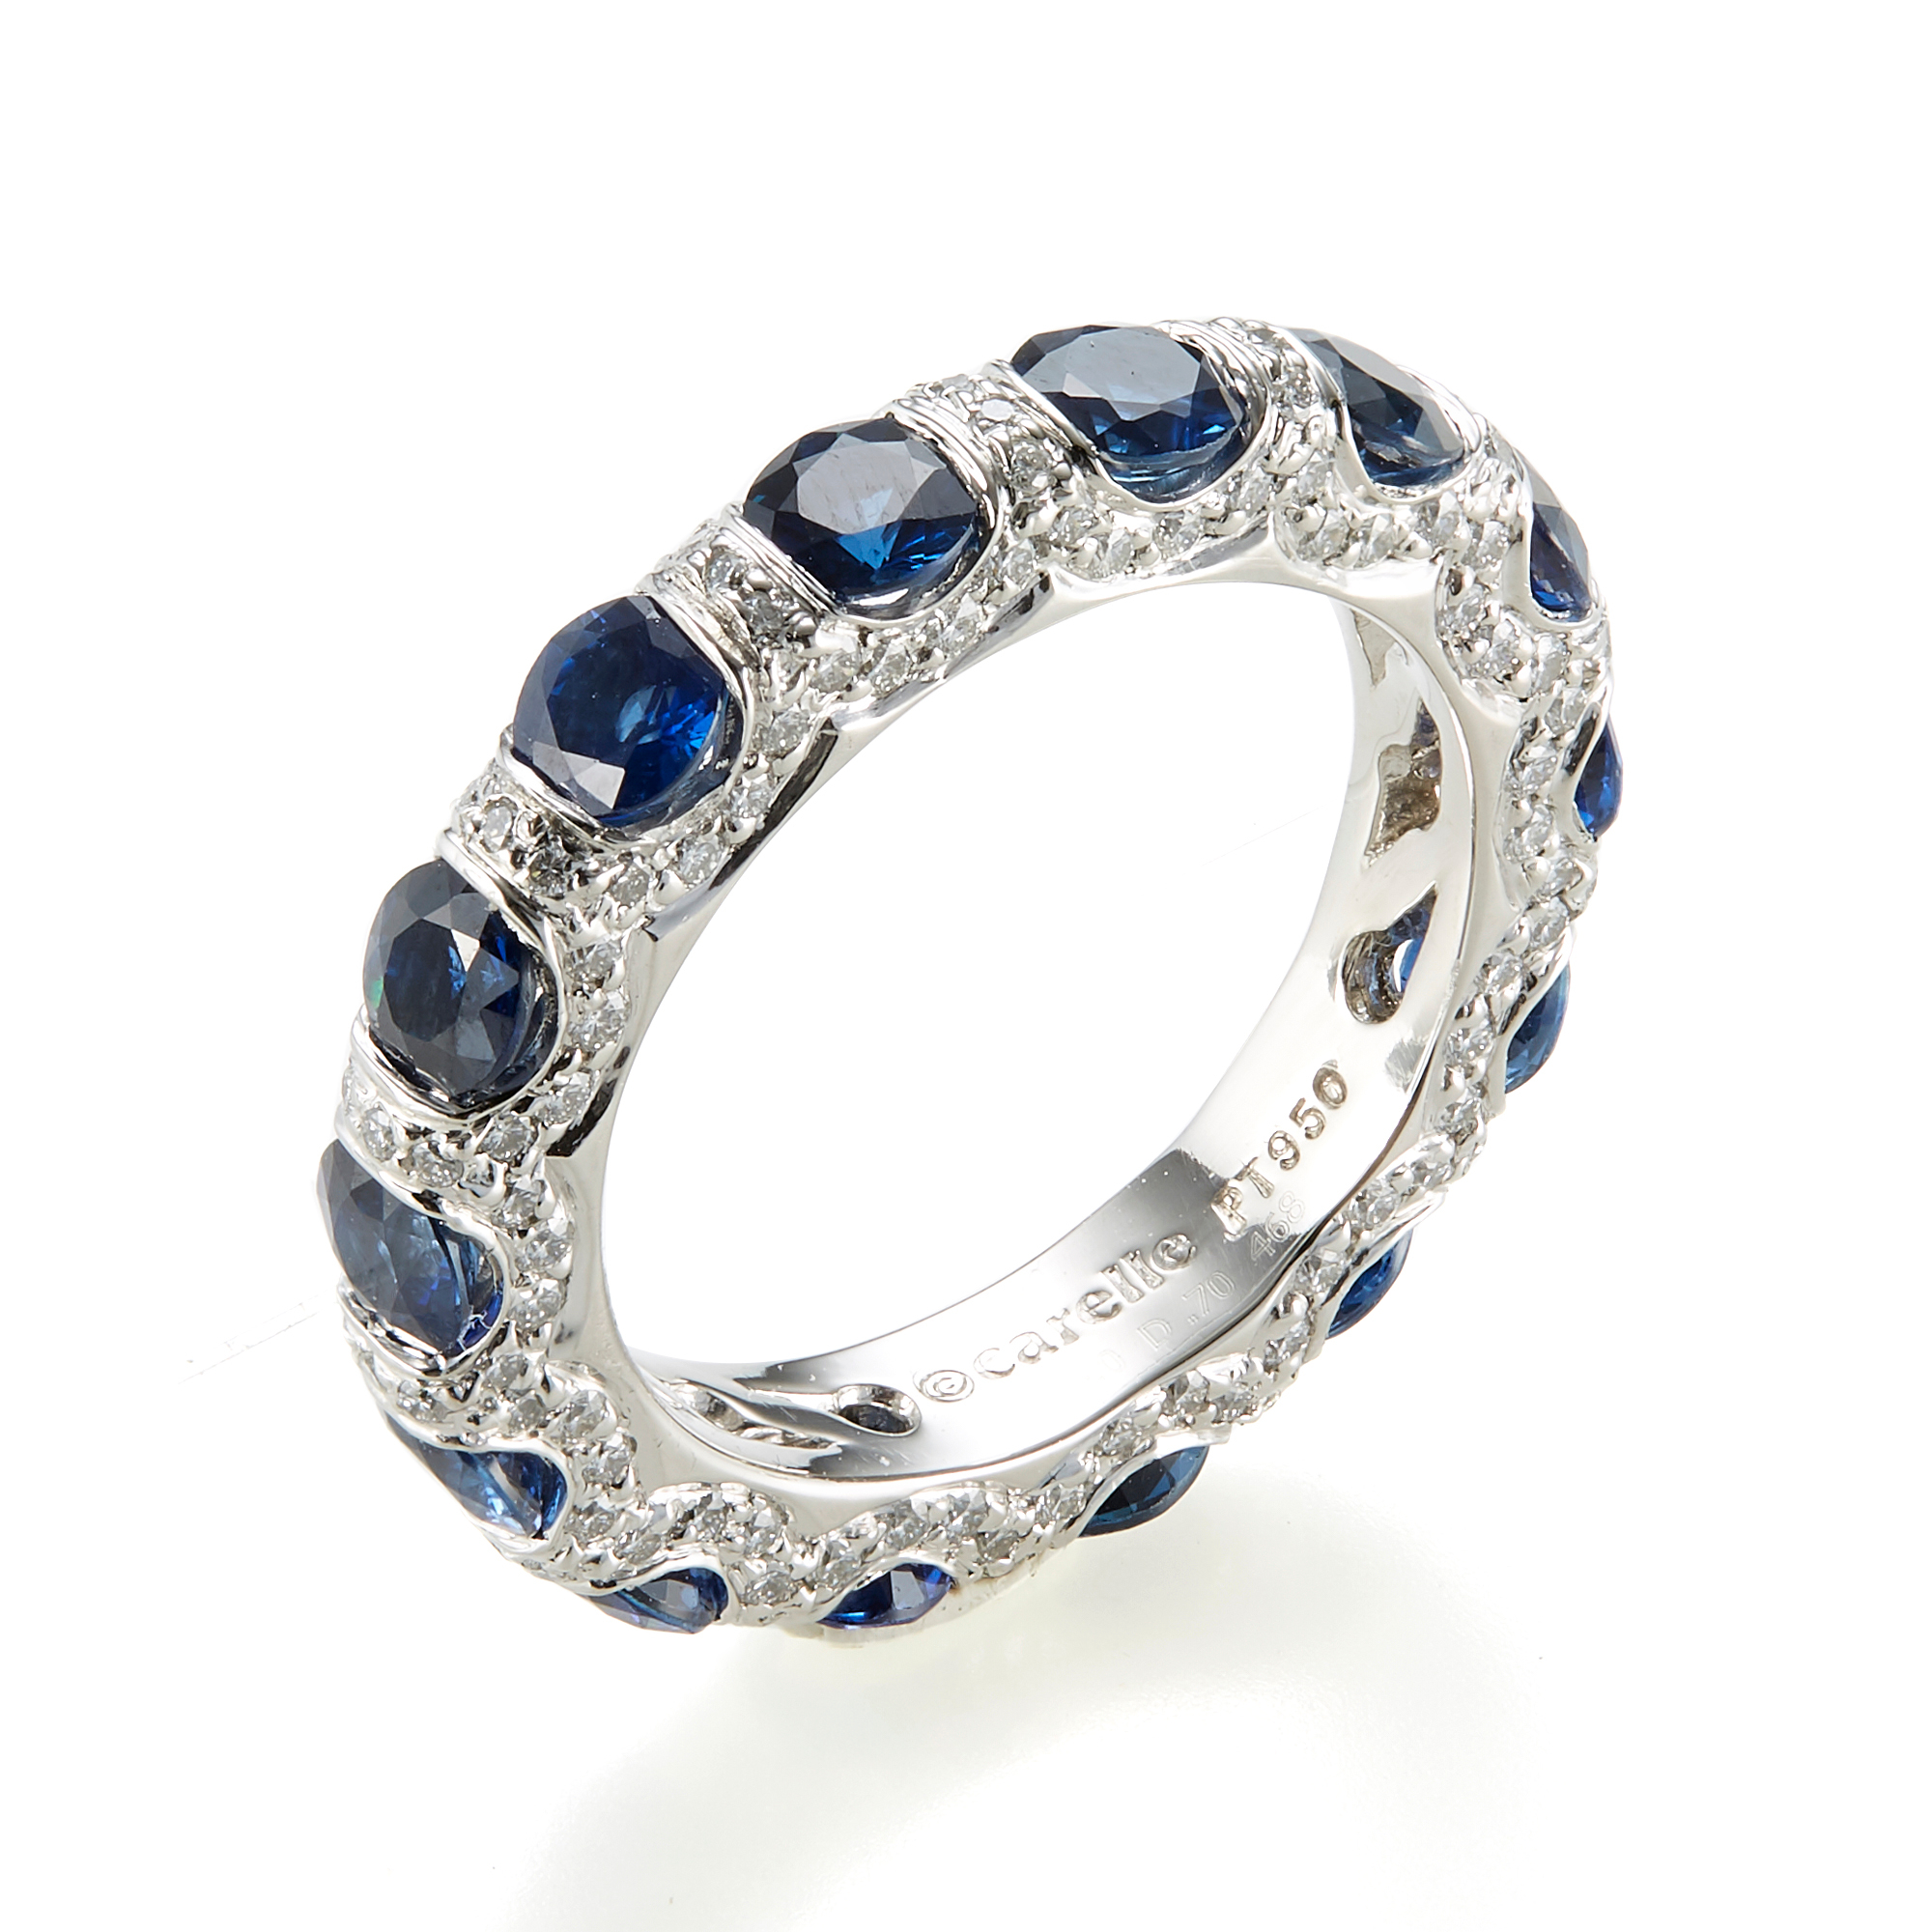 ring platinum embrace eternity tiffany band co a and jewelry diamond sapphire bands